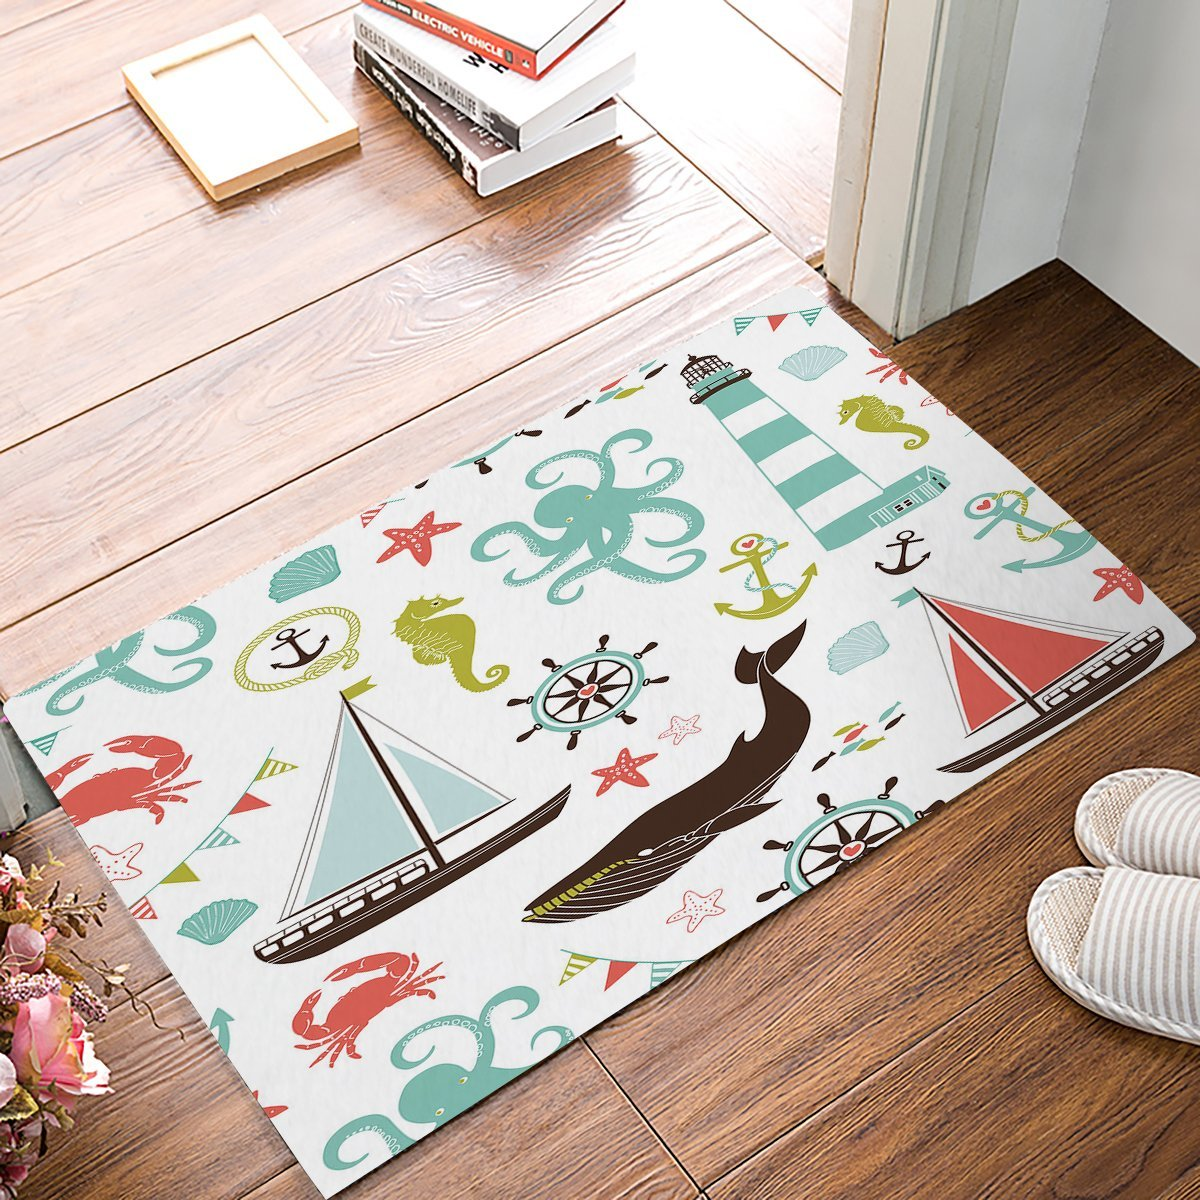 Beach Theme - Whale Starfish Seashell Boat Tower Anchor Nautical Door Mats Kitchen Floor Bath Entryway Rug Mat